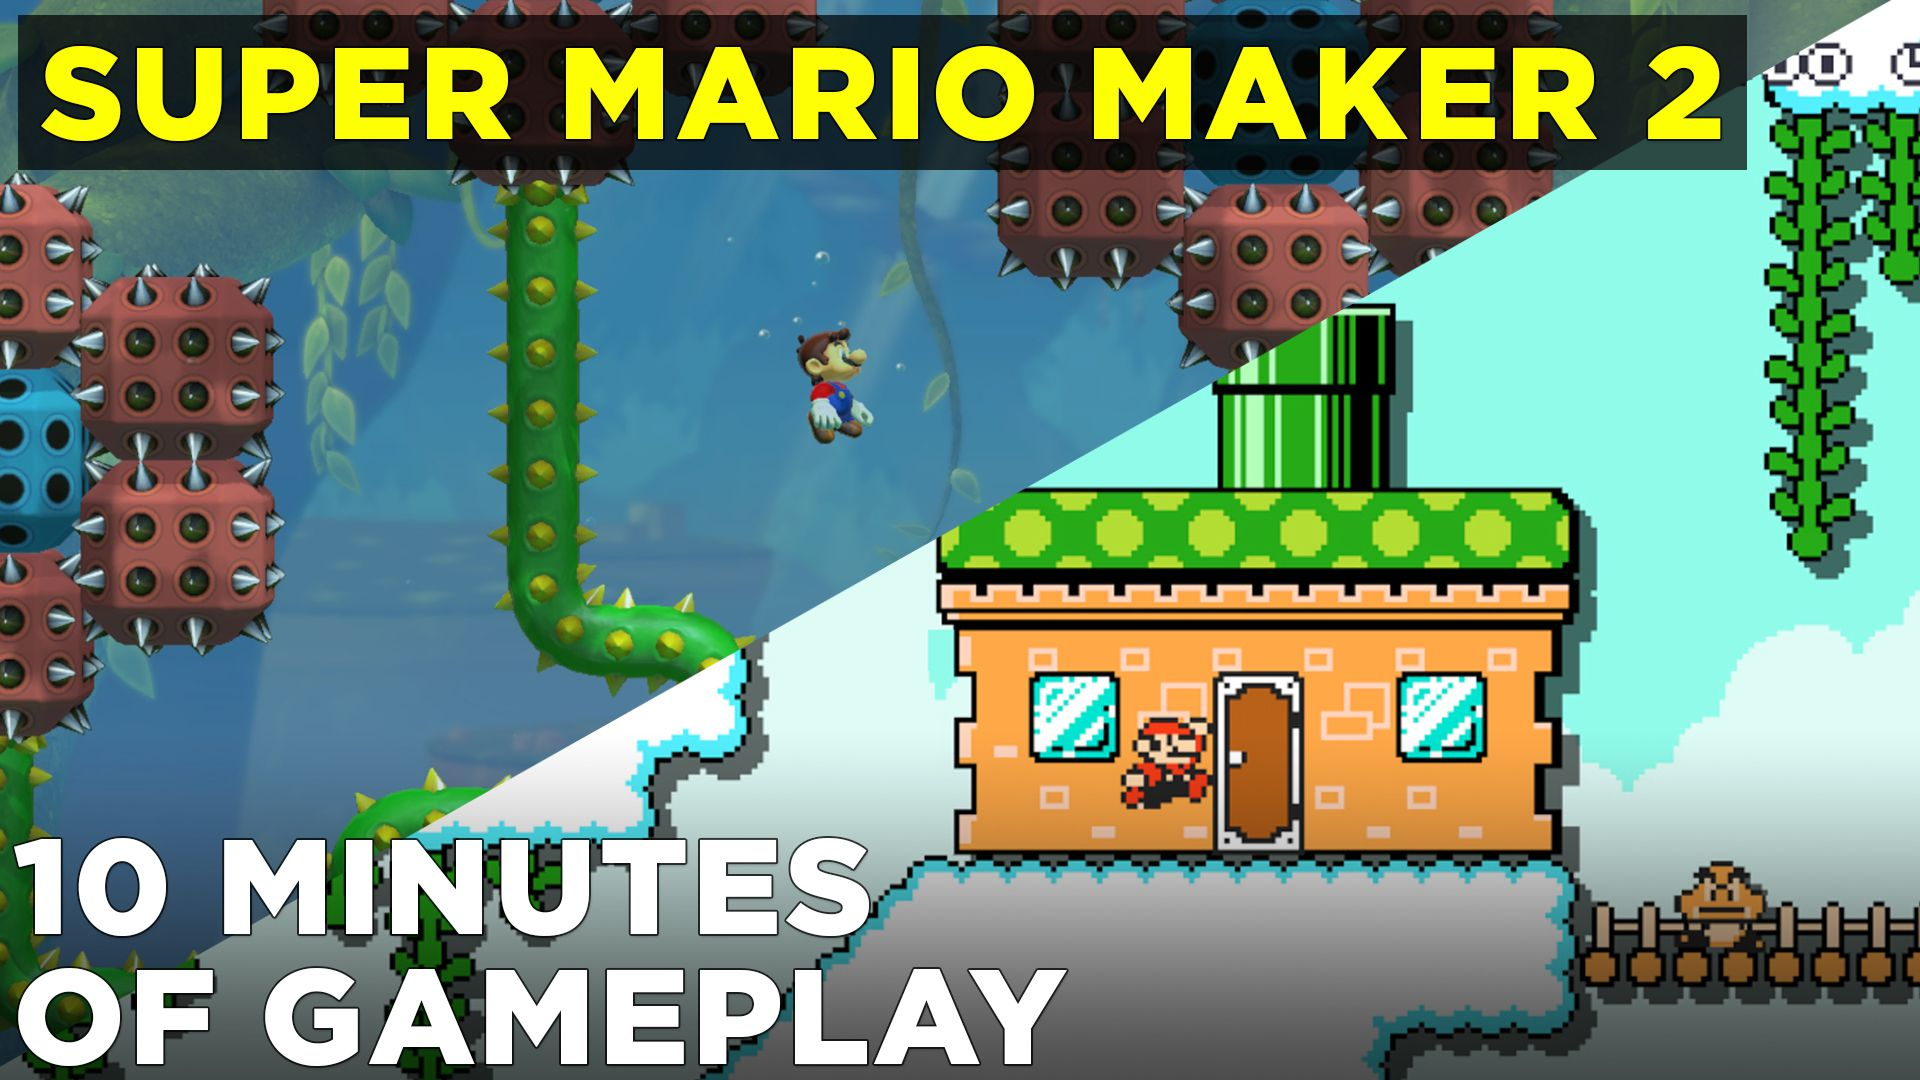 Super Mario Maker 2 hands-on preview with multiplayer mode - Polygon